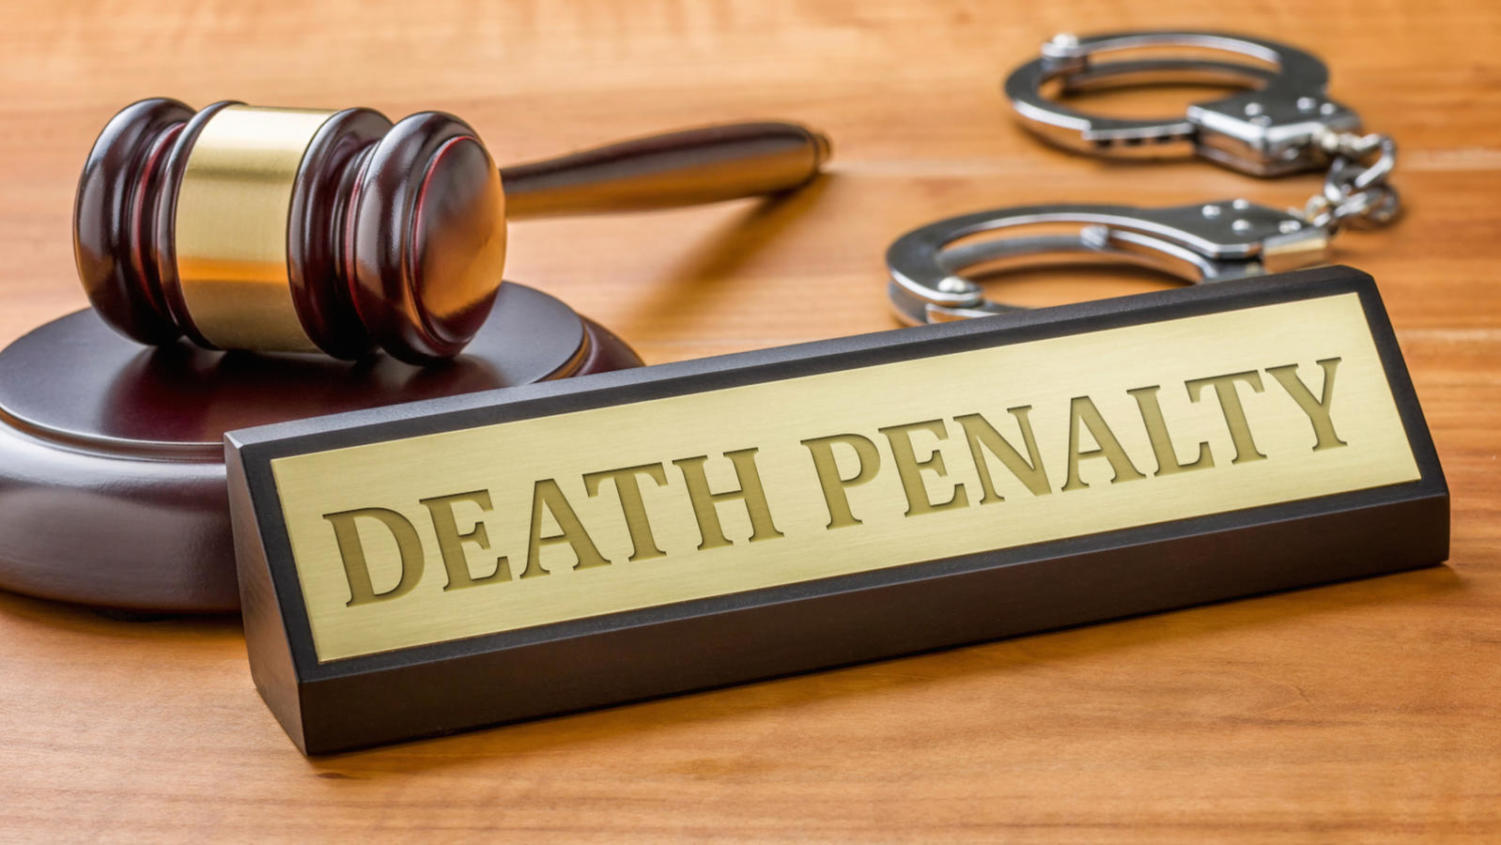 https://www.myjewishlearning.com/article/the-death-penalty-in-jewish-tradition/